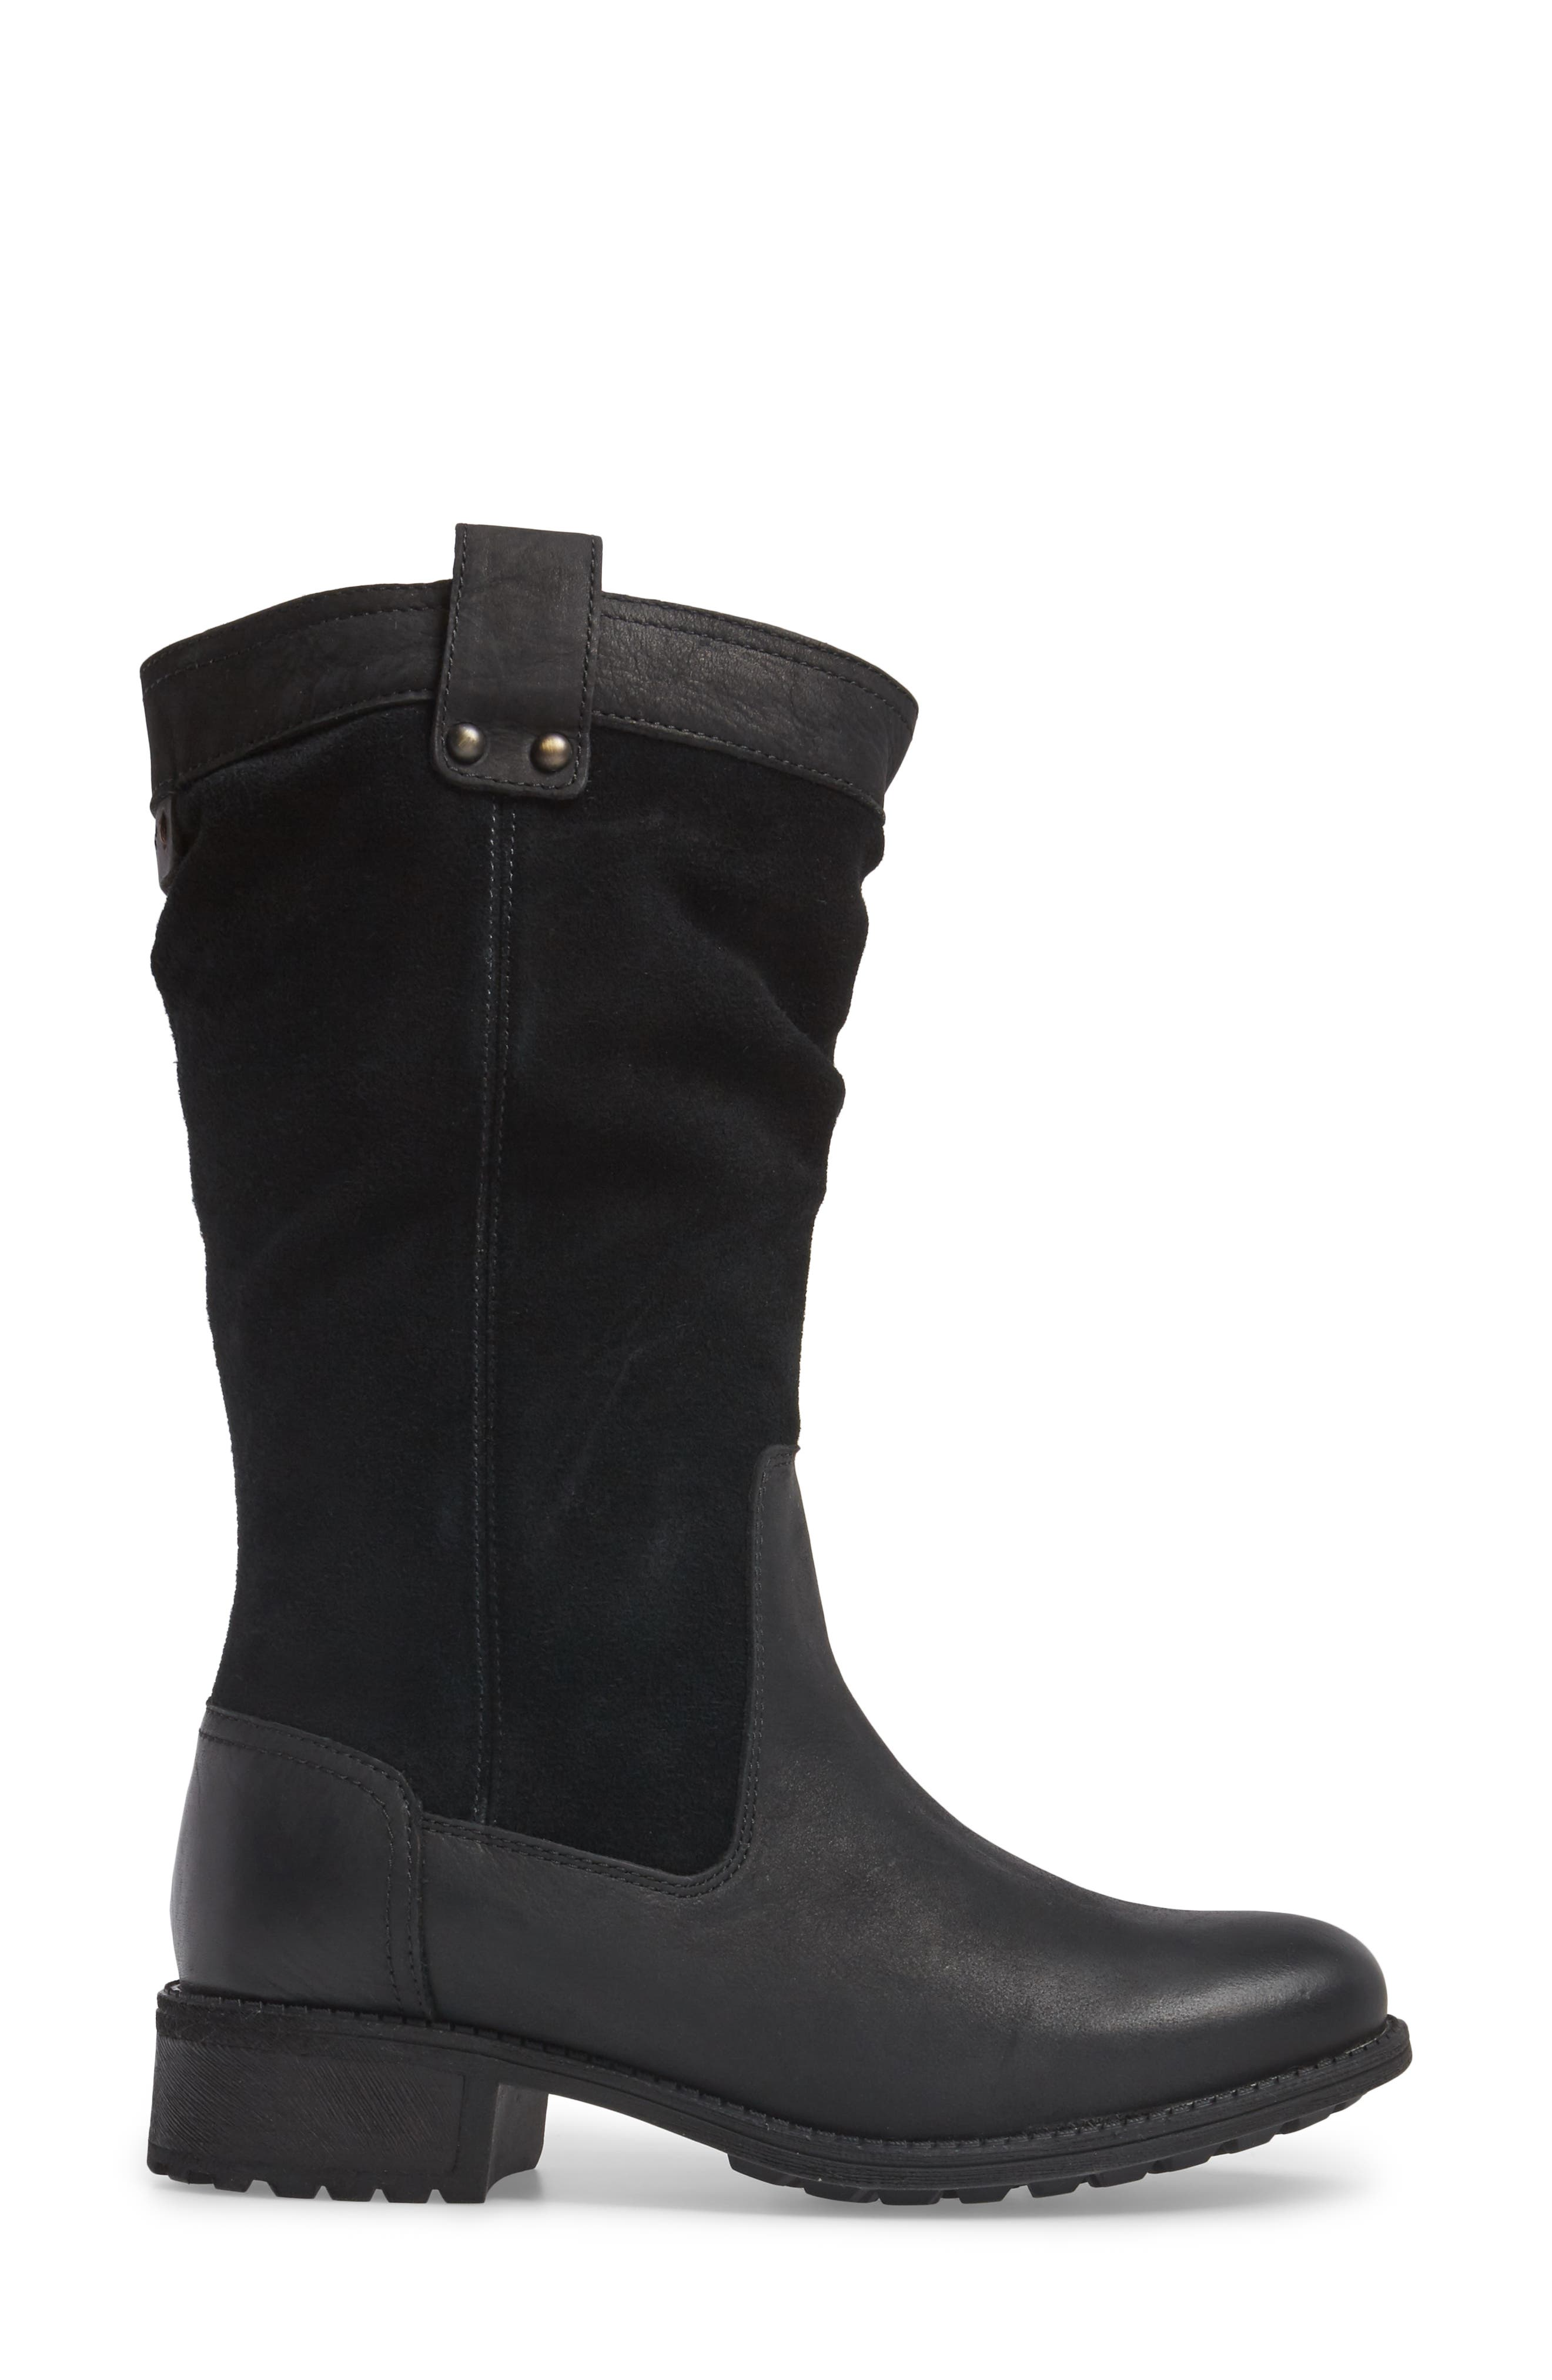 Bruckner Water Resistant Slouch Boot,                             Alternate thumbnail 3, color,                             Black Leather